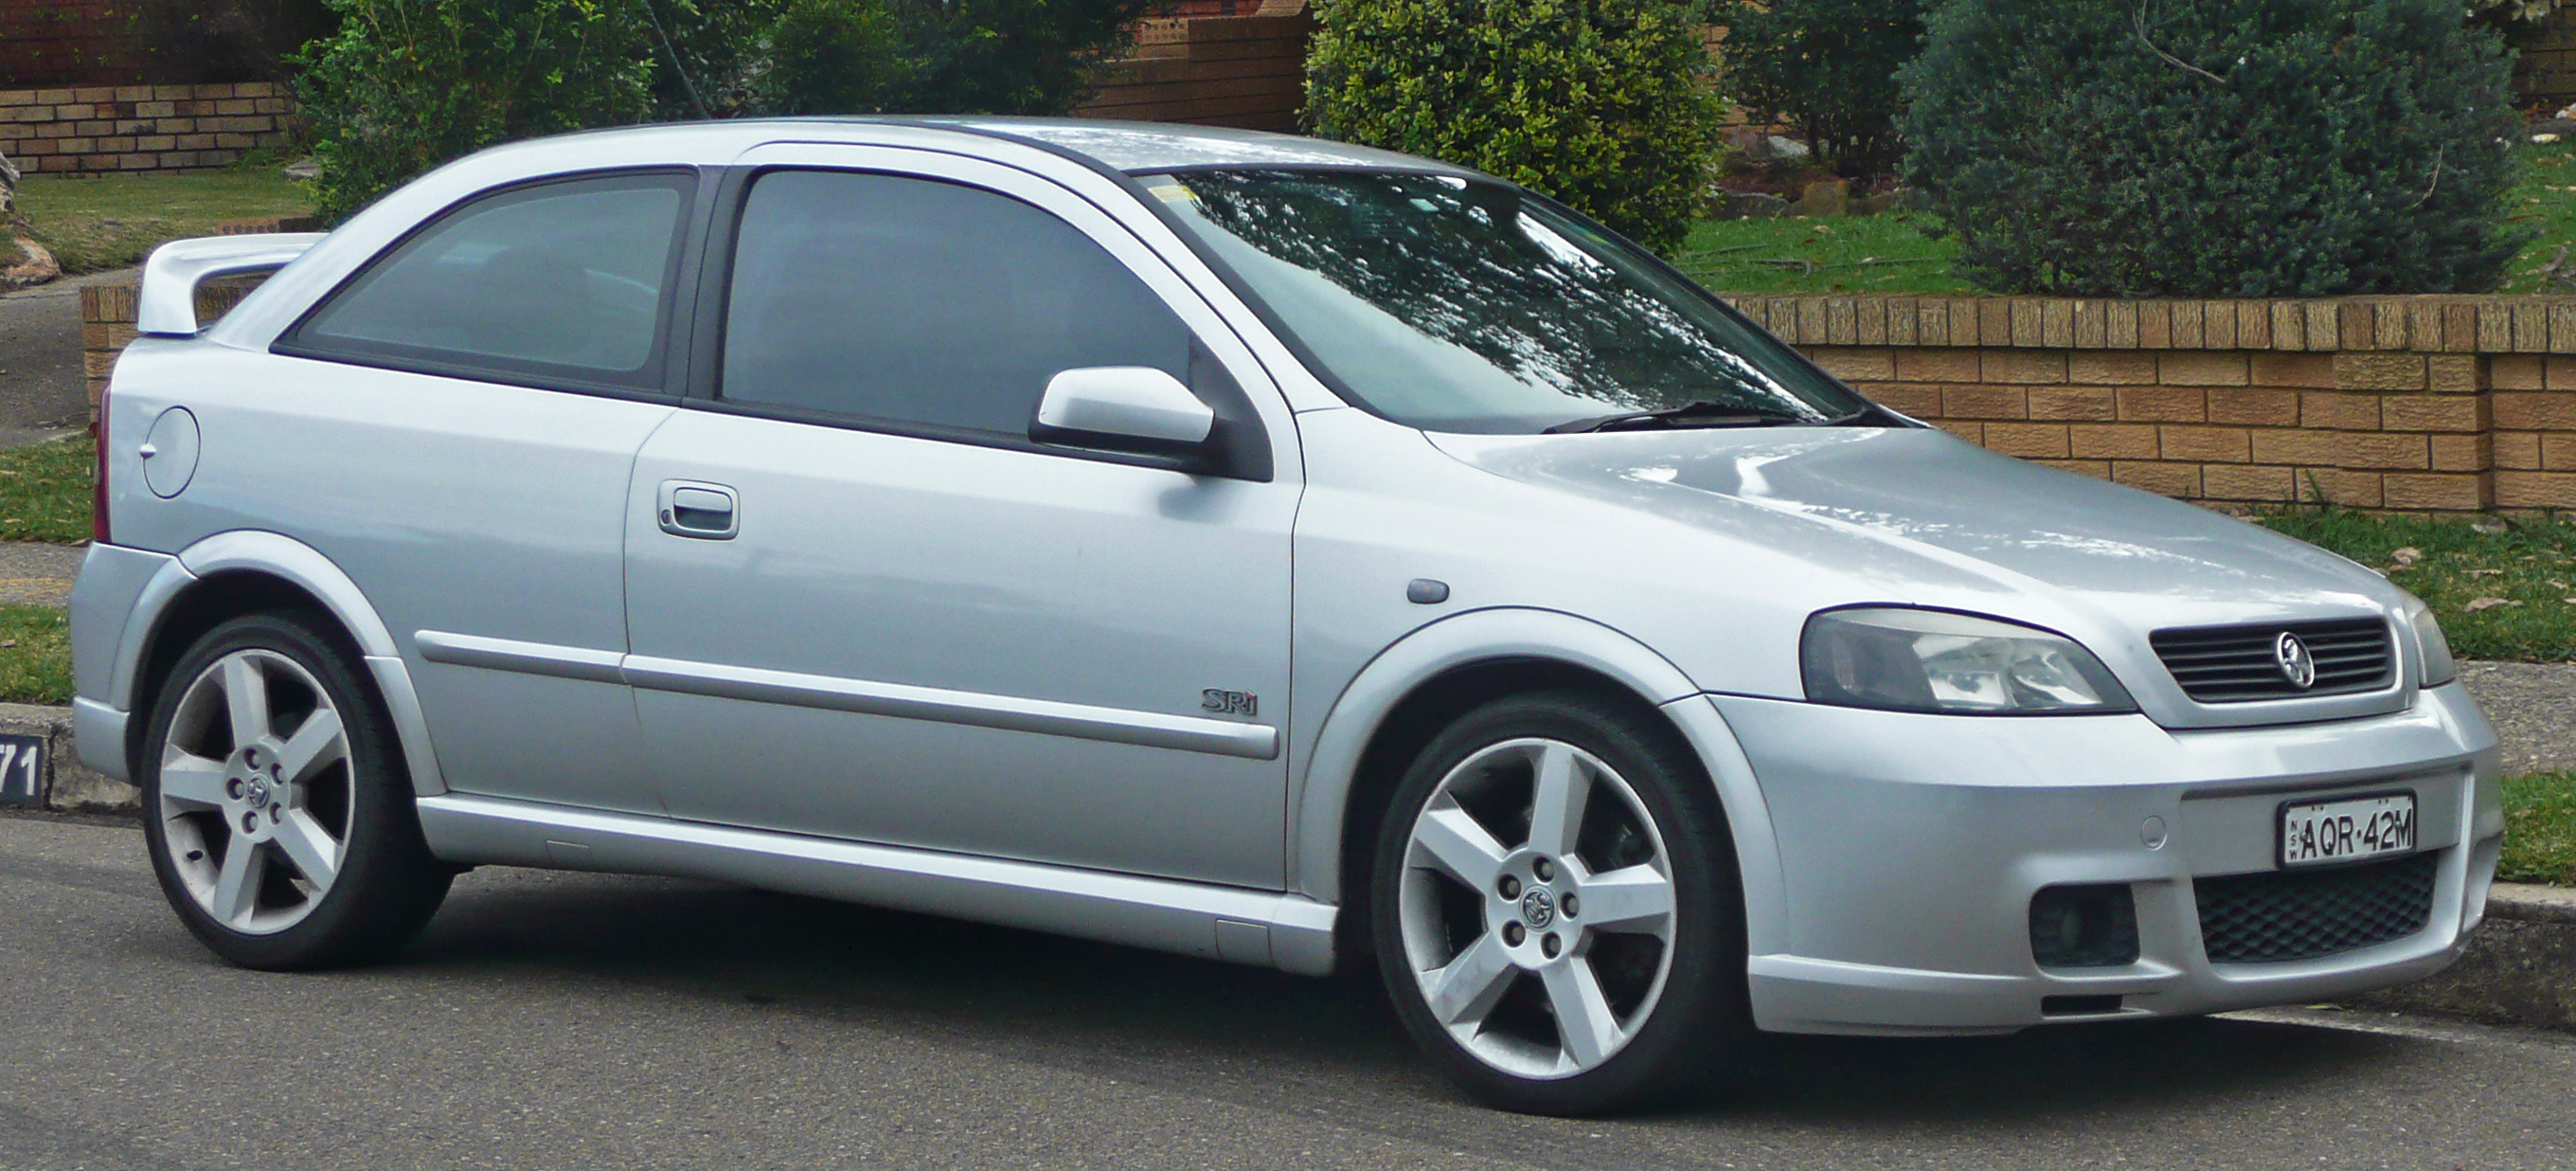 File 2003 2004 Holden Astra Ts Sri Turbo 3 Door